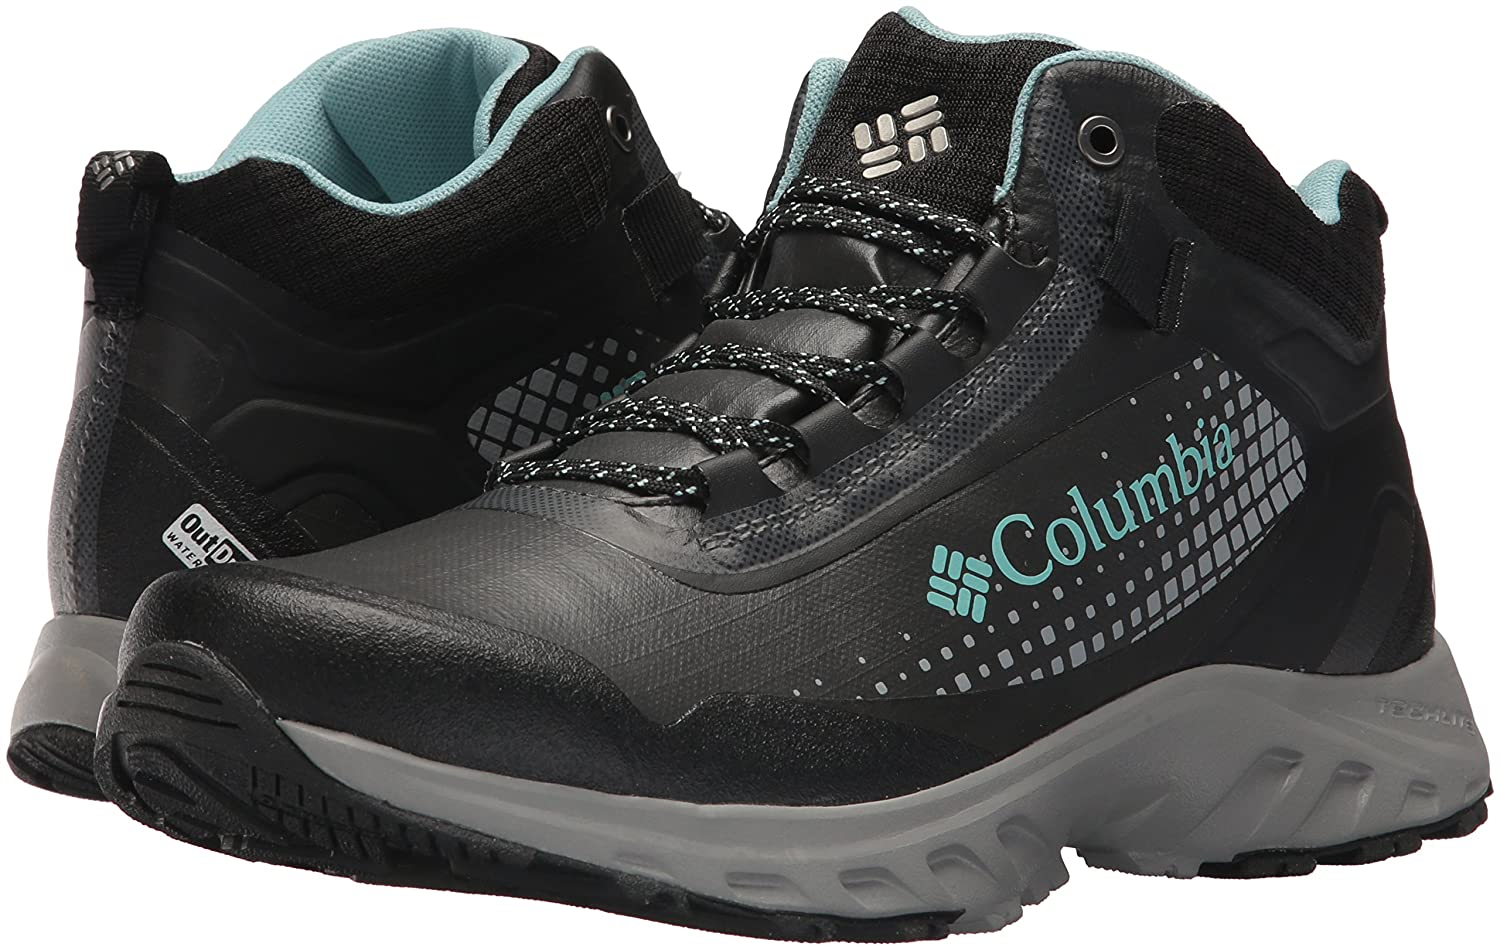 Columbia Women's Irrigon Trail Boot Mid Outdry Xtrm Hiking Boot Trail B073RNRK9N 10 B(M) US|Black, Iceberg 461d68